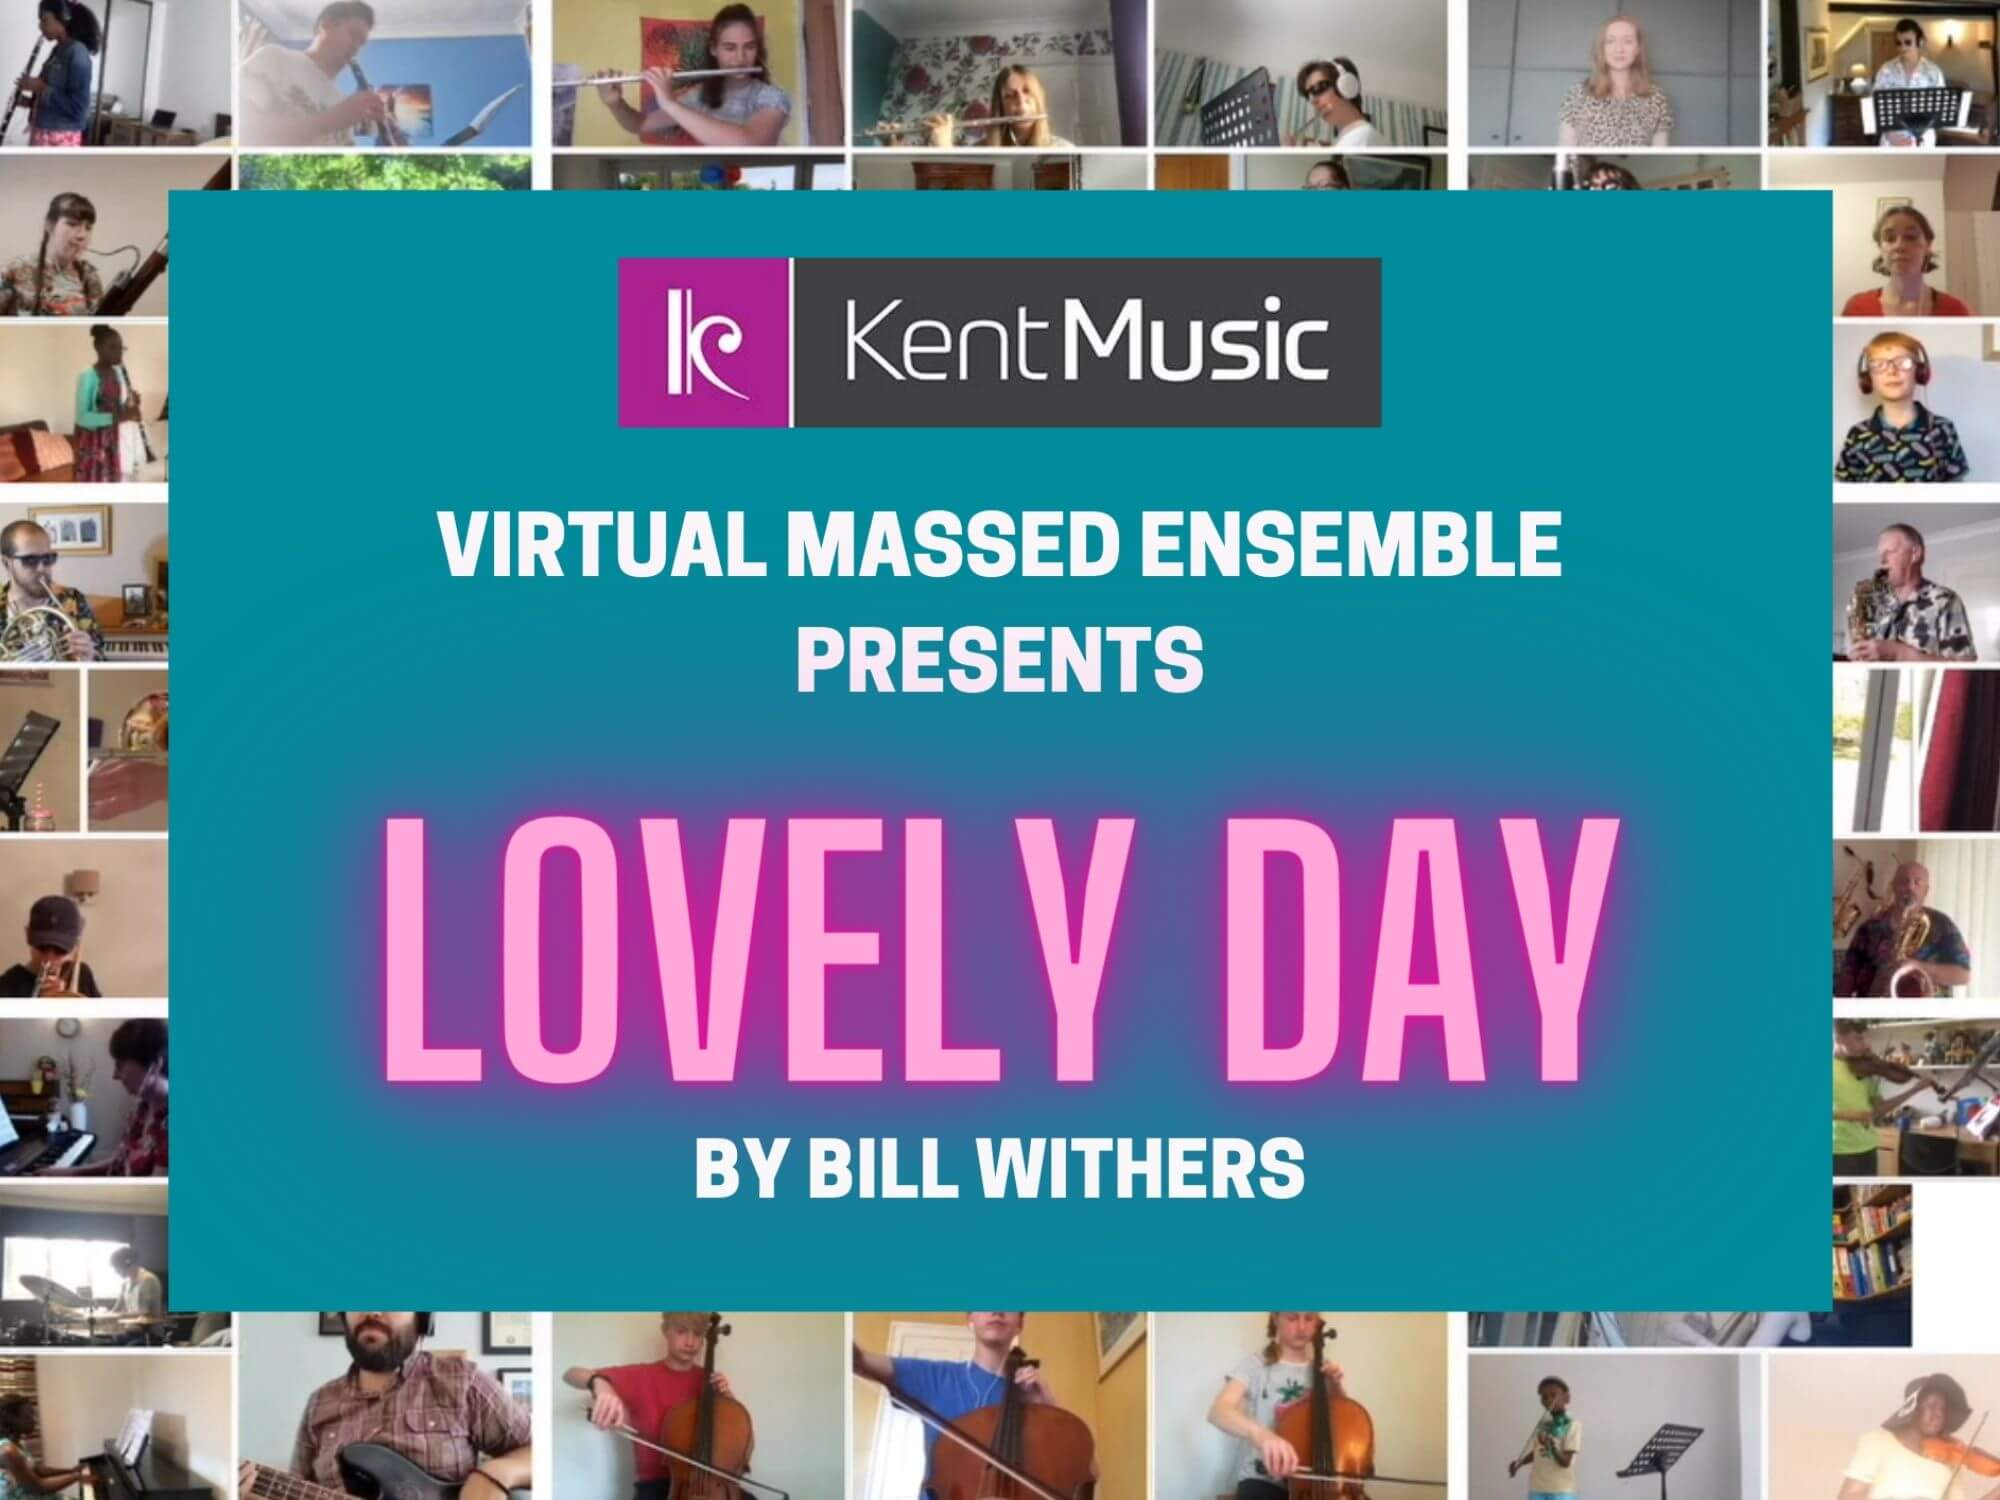 Lovely Day Virtual Ensemble by Kent Music